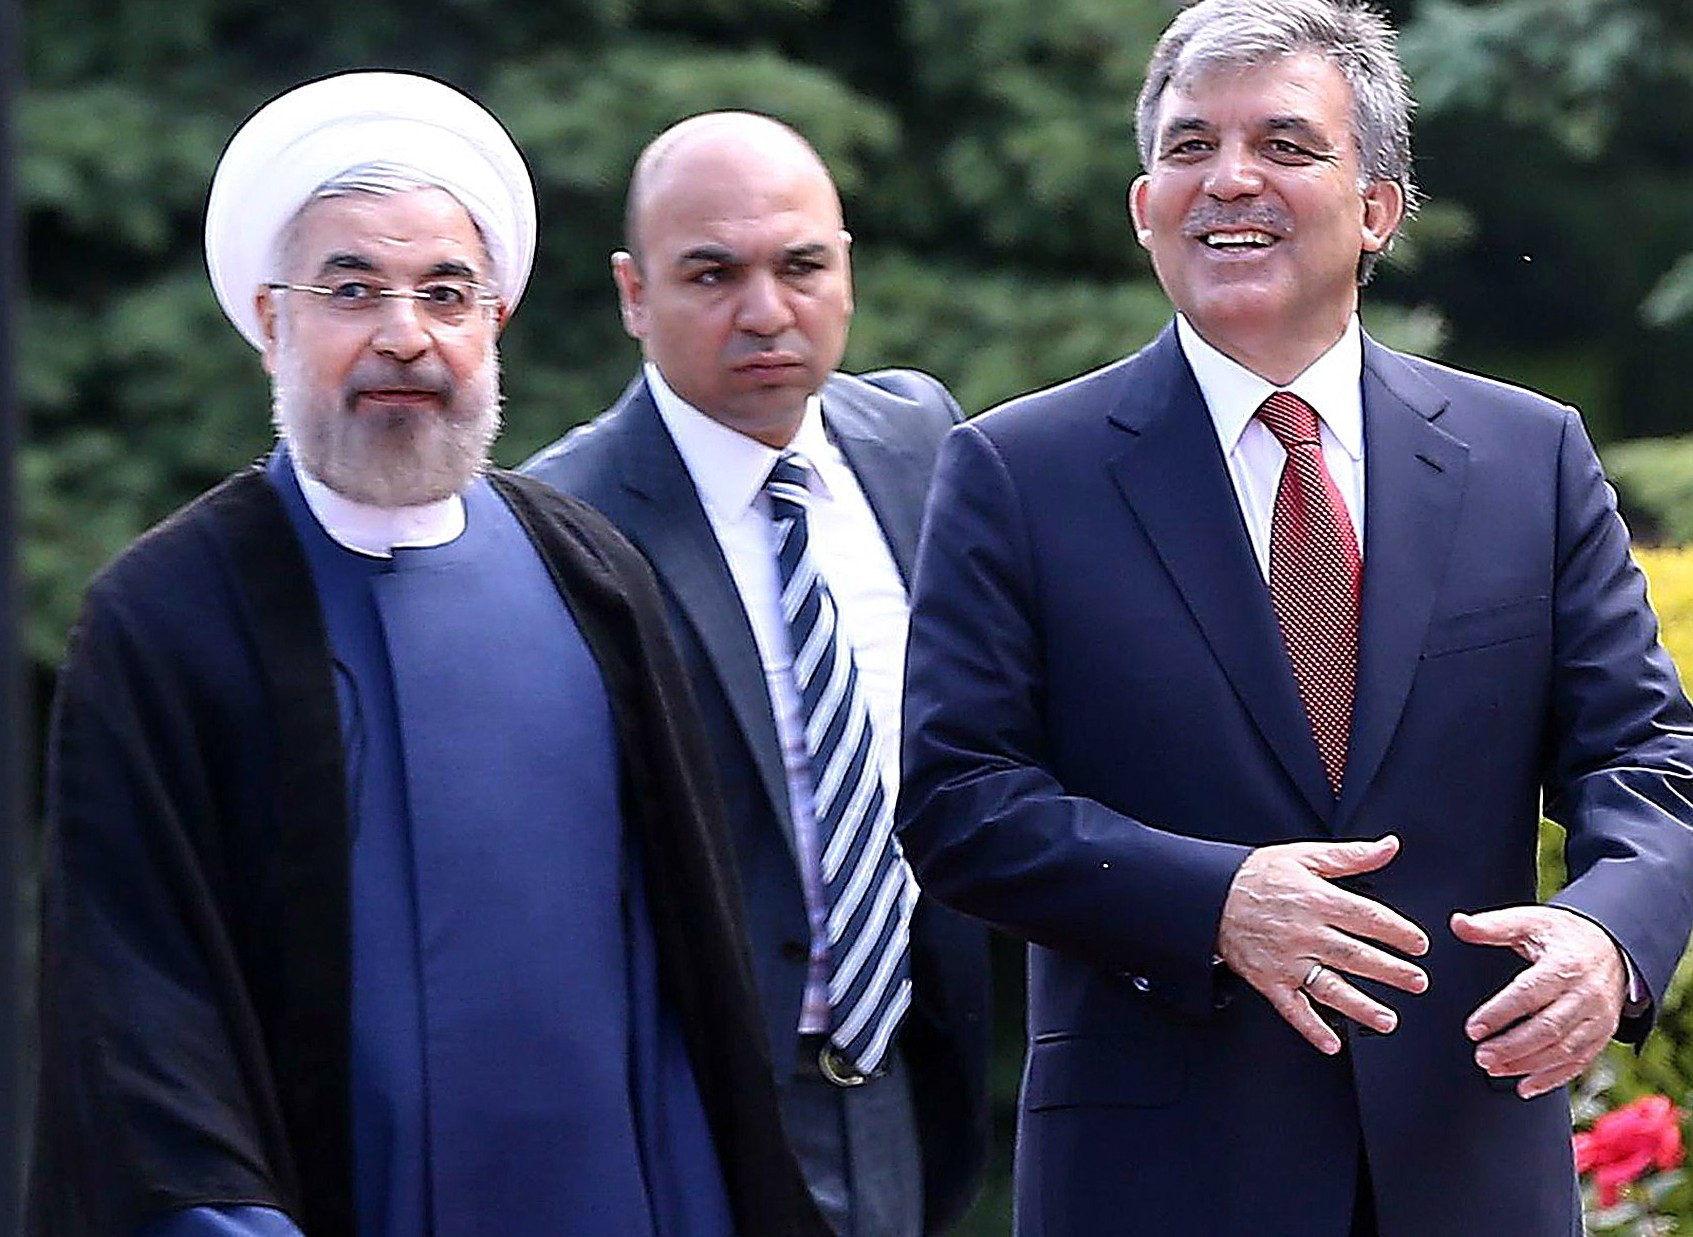 Turkish President Abdullah Gul (R) speaks with Iranian President Hassan Rouhani (L) at presidential palace in Ankara, on June 9, 2014.  (AFP PHOTO/ADEM)